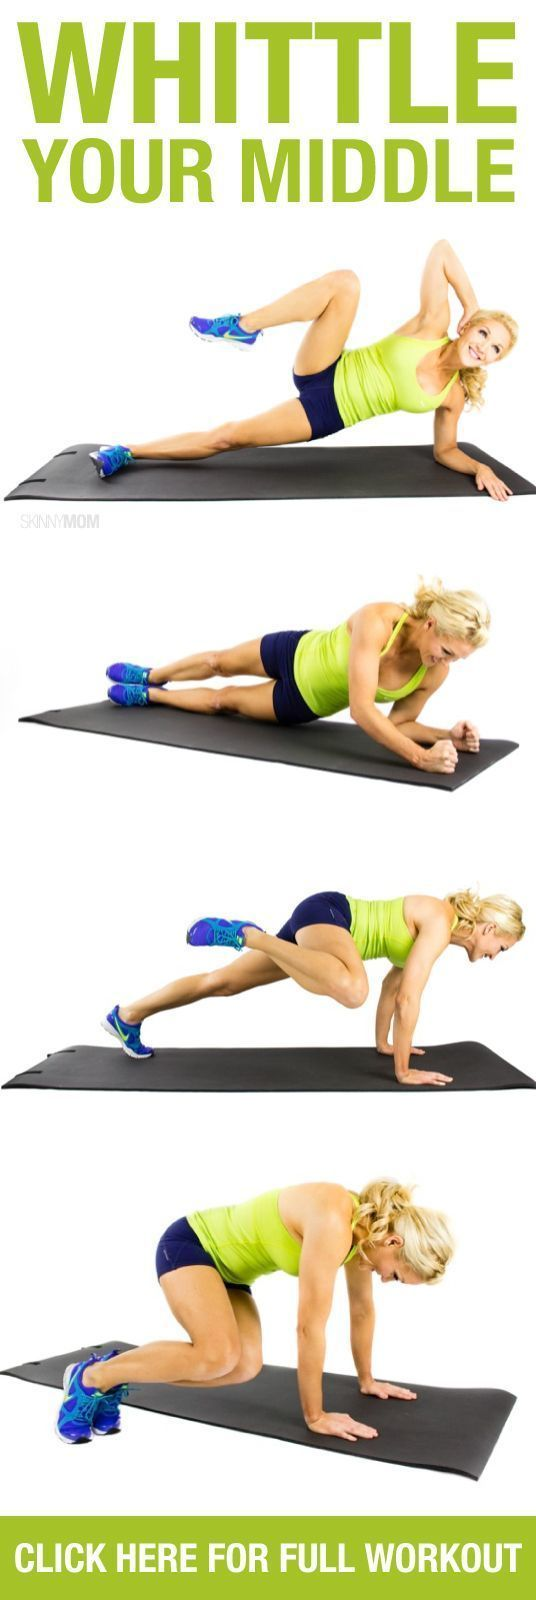 Get that core nice and tight for summer with these fitness moves! http://www.beachbodycoach.com/esuite/home/taylorvidinha